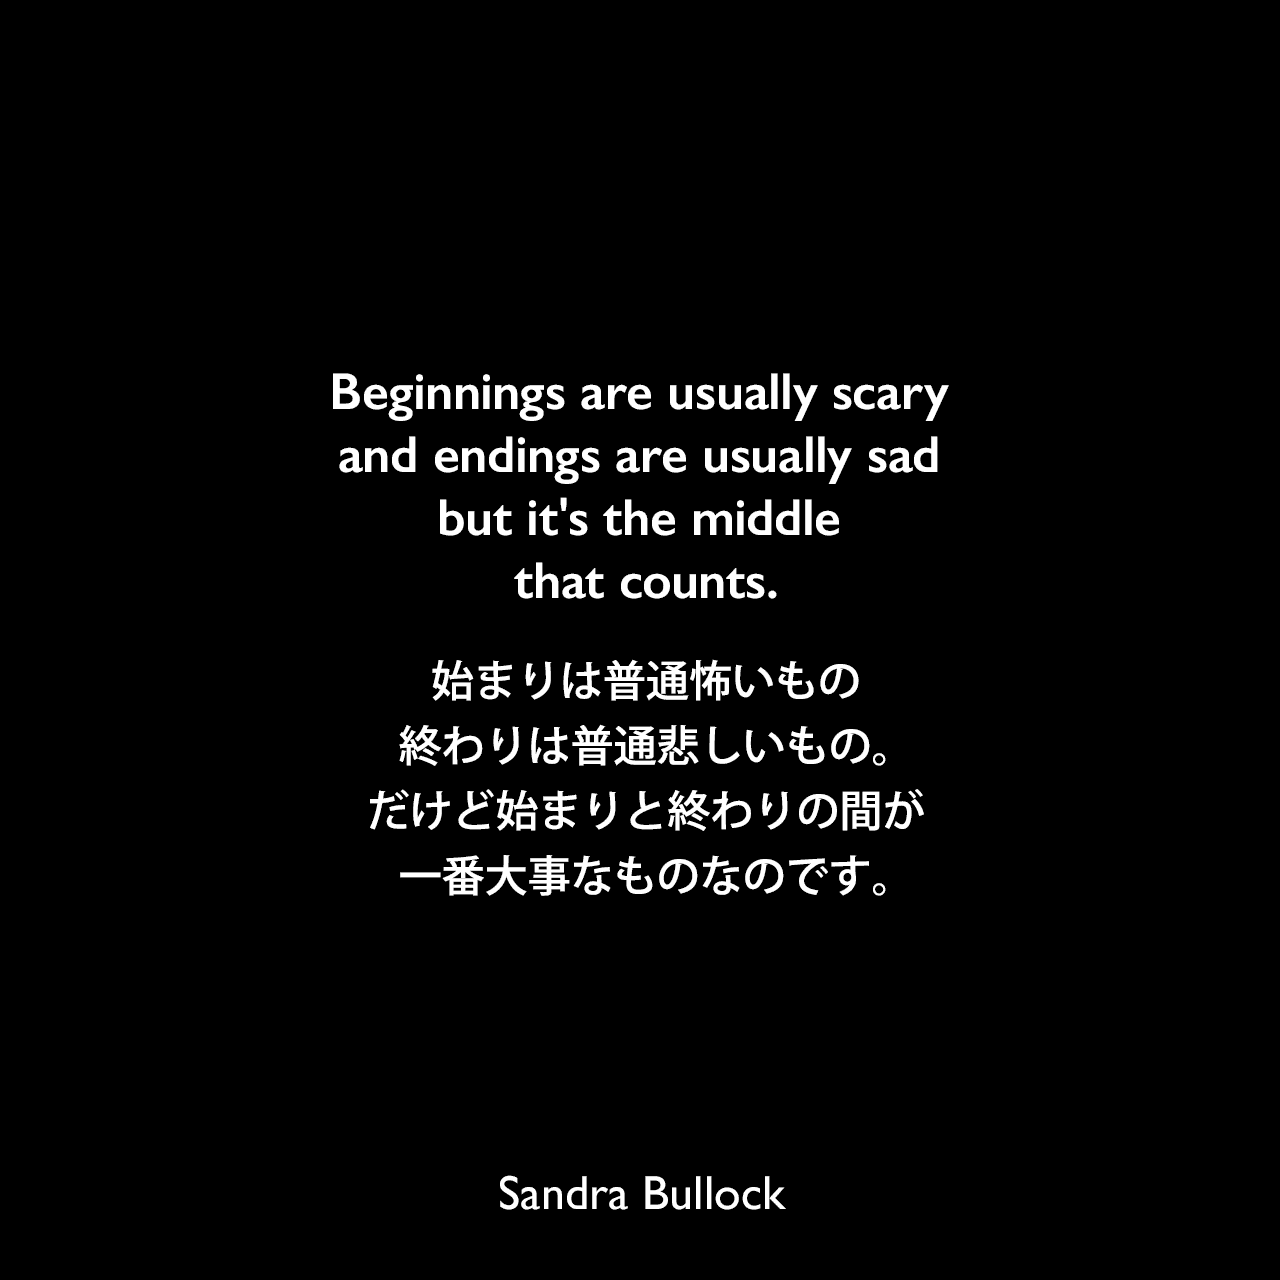 Beginnings are usually scary and endings are usually sad but it's the middle that counts.始まりは普通怖いもの、終わりは普通悲しいもの。だけど始まりと終わりの間が一番大事なものなのです。- 2009年のWinnipeg Uptown MagazineよりSandra Bullock